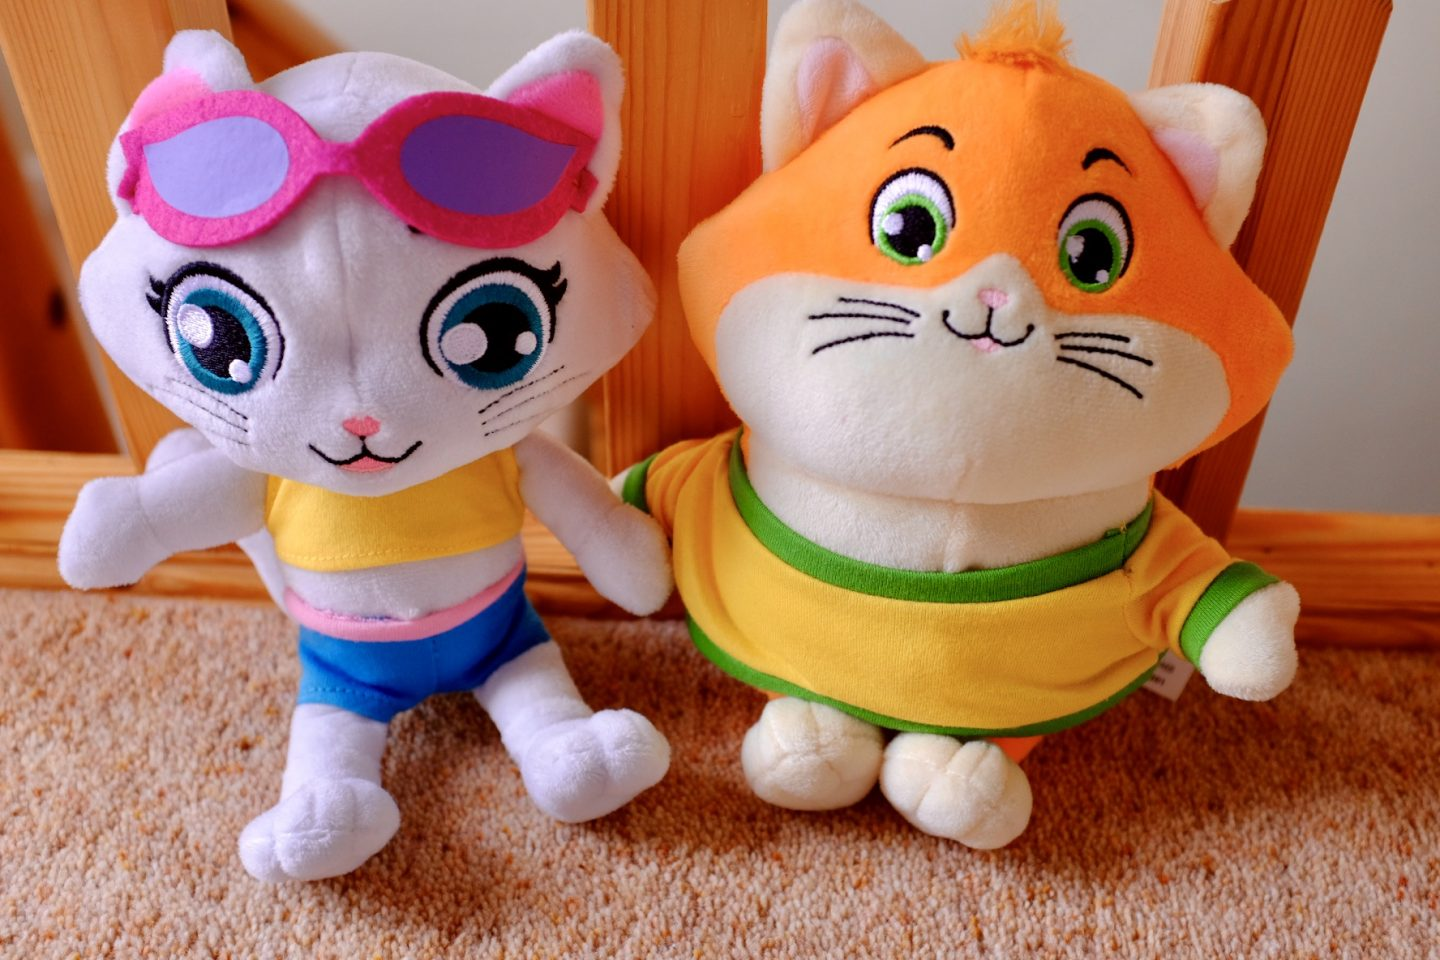 44 Cats Toys Range – REVIEW